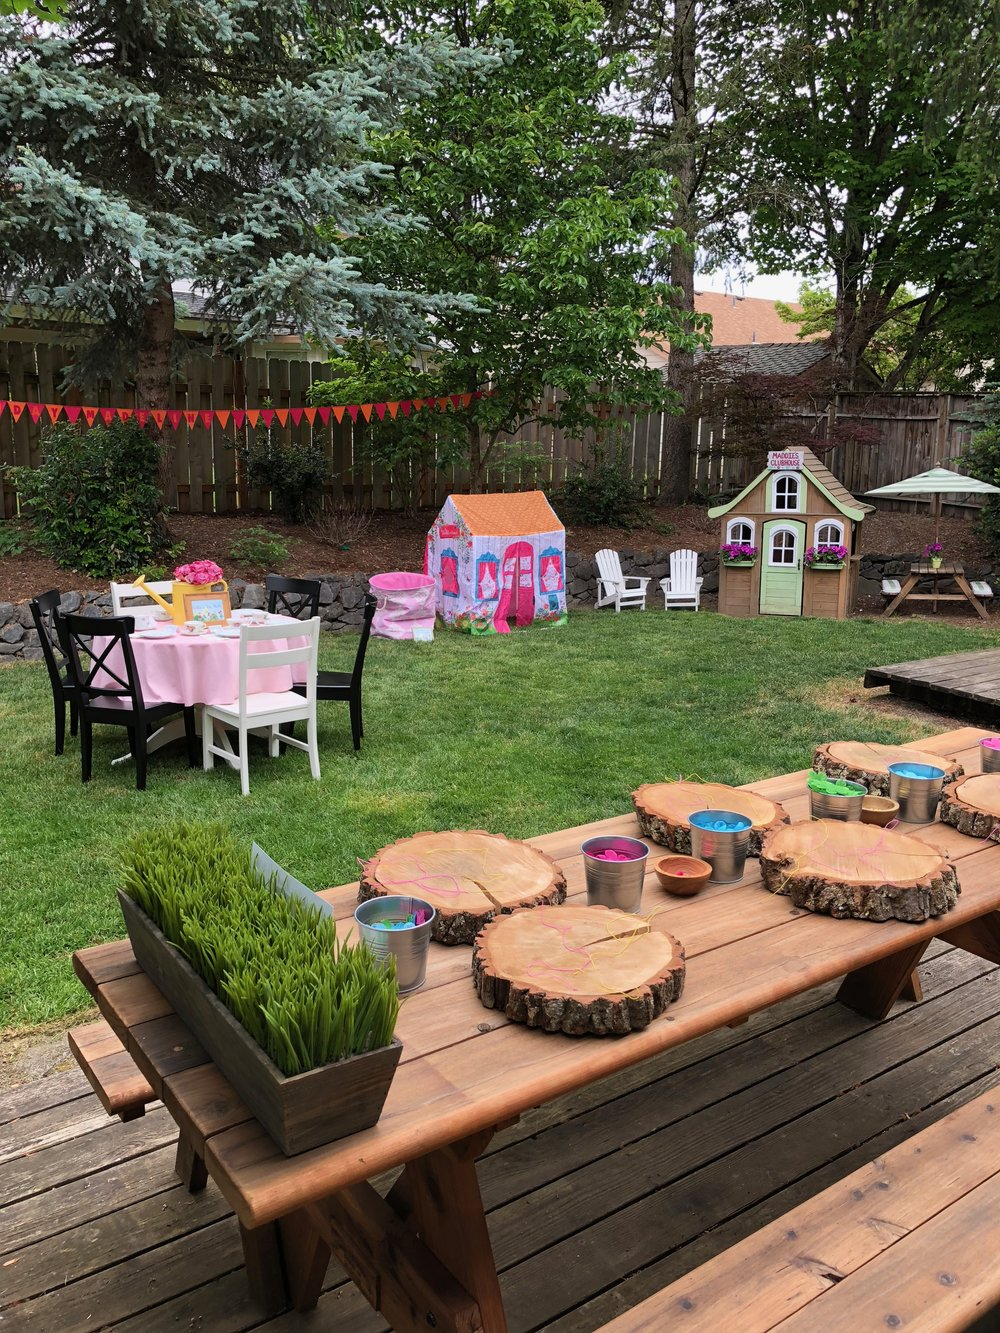 Our backyard isn't very large, but we had ample space for the five stations and plenty of room to move about. The banner in the trees is made of felt and was made by me for Maddie's first birthday party. I loved that it got some use again!